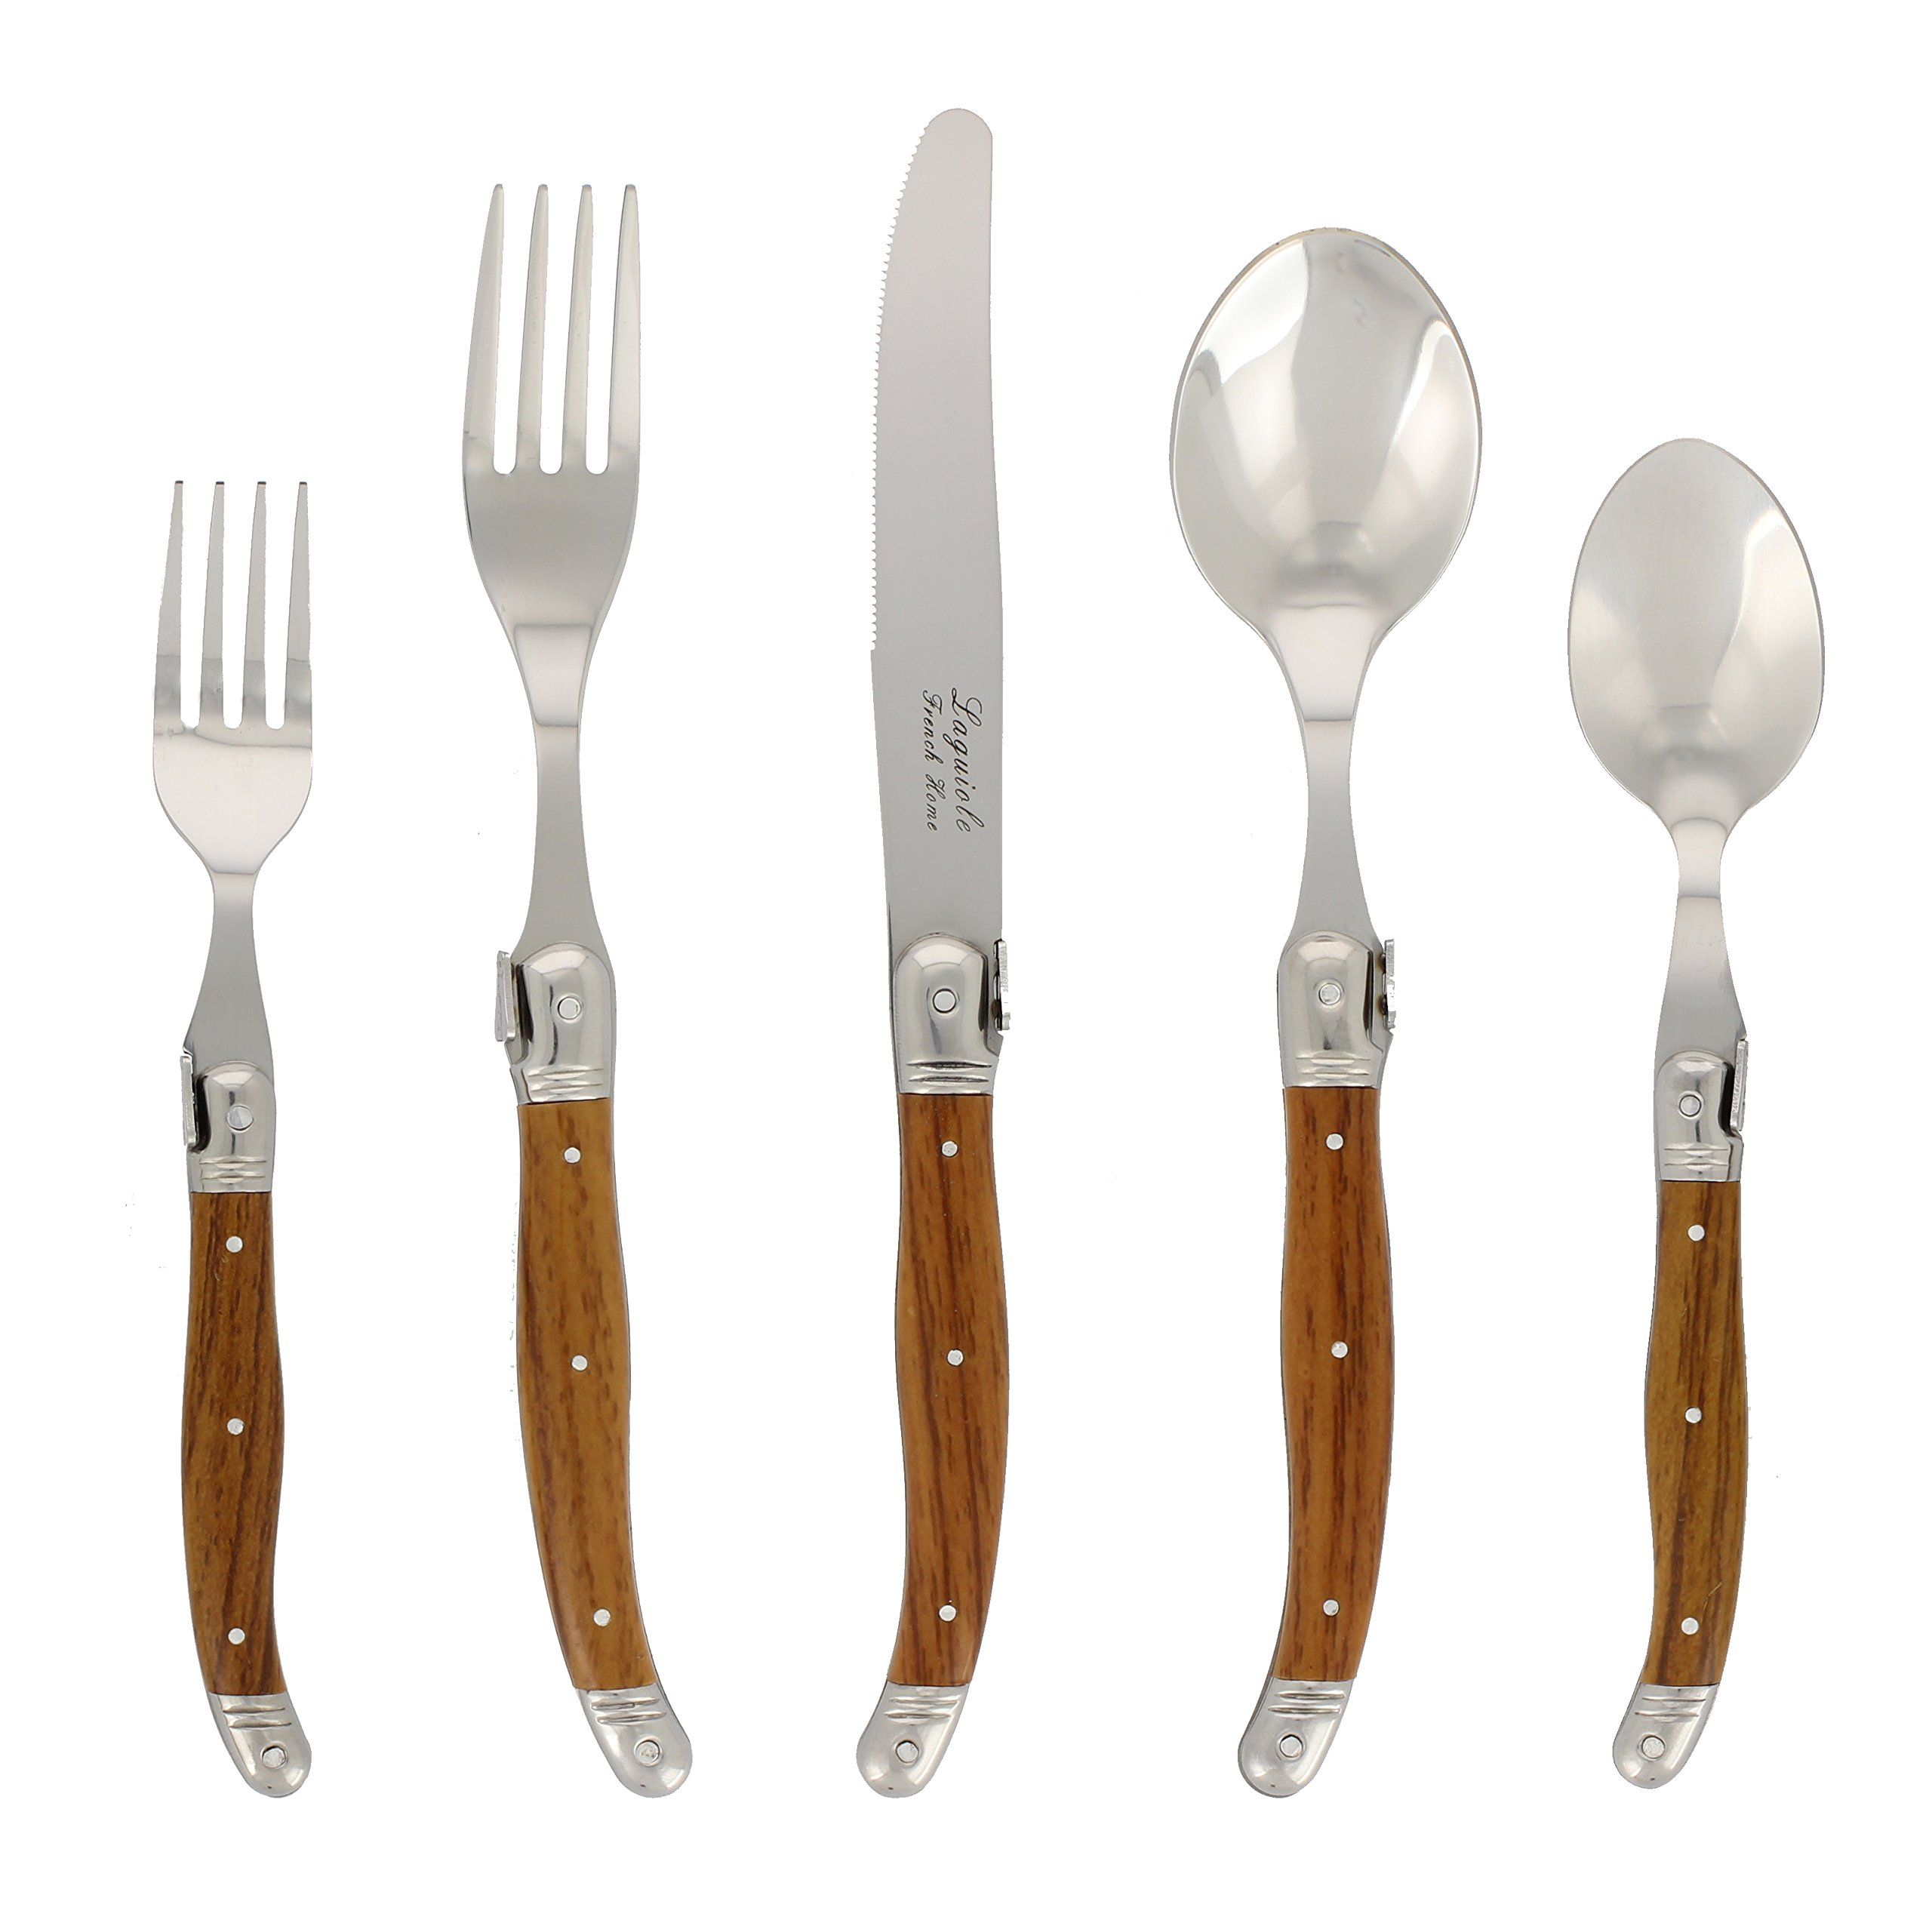 20 Piece Laguiole Flatware Set, Wood Grain